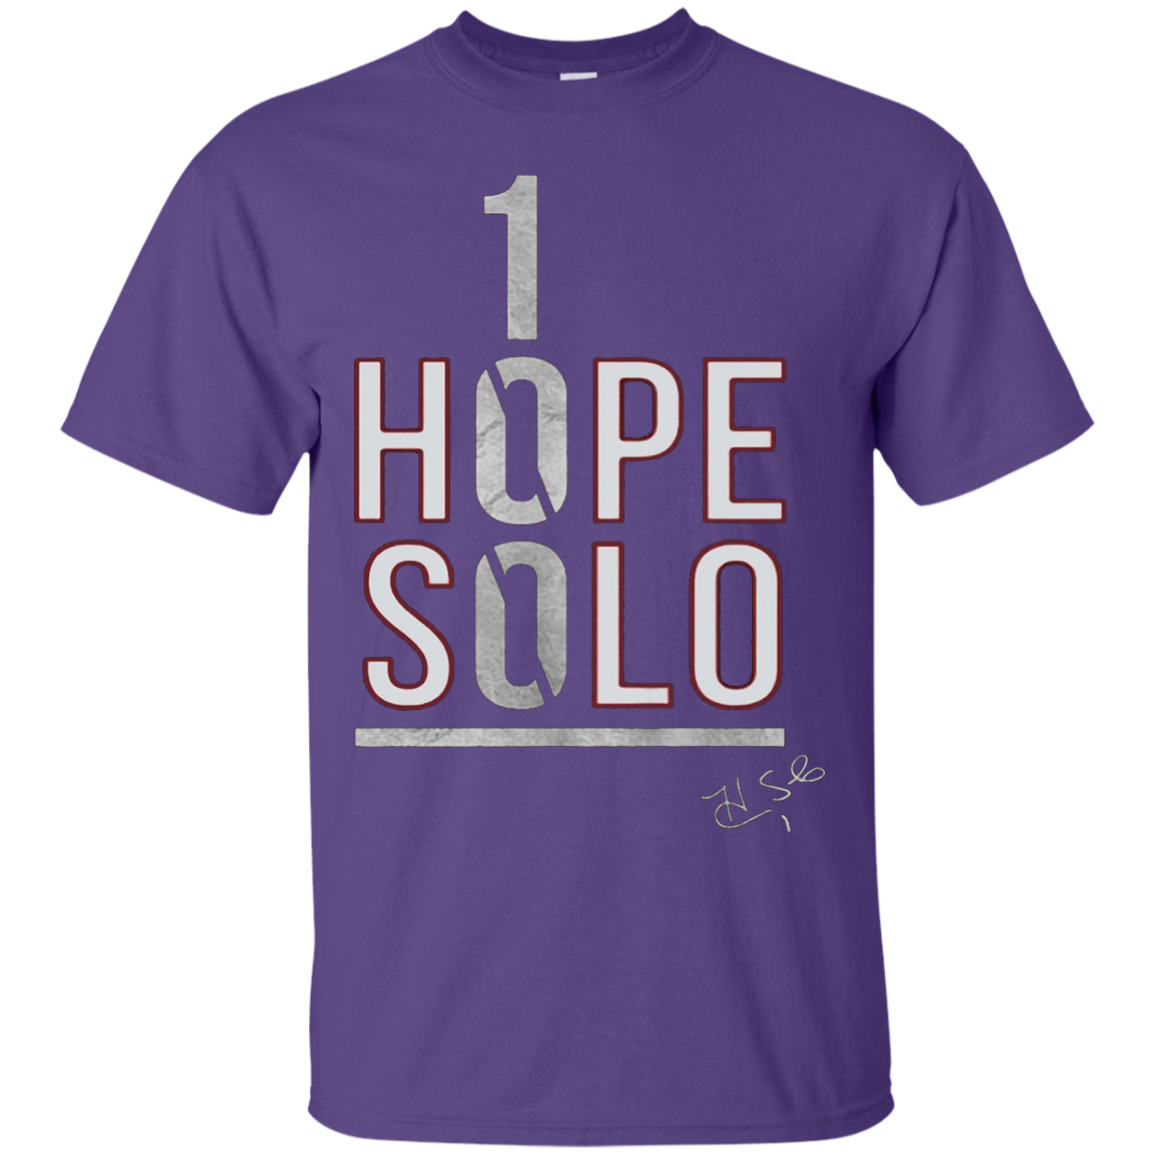 100 Hope Solo T-shirt - T-Shirt